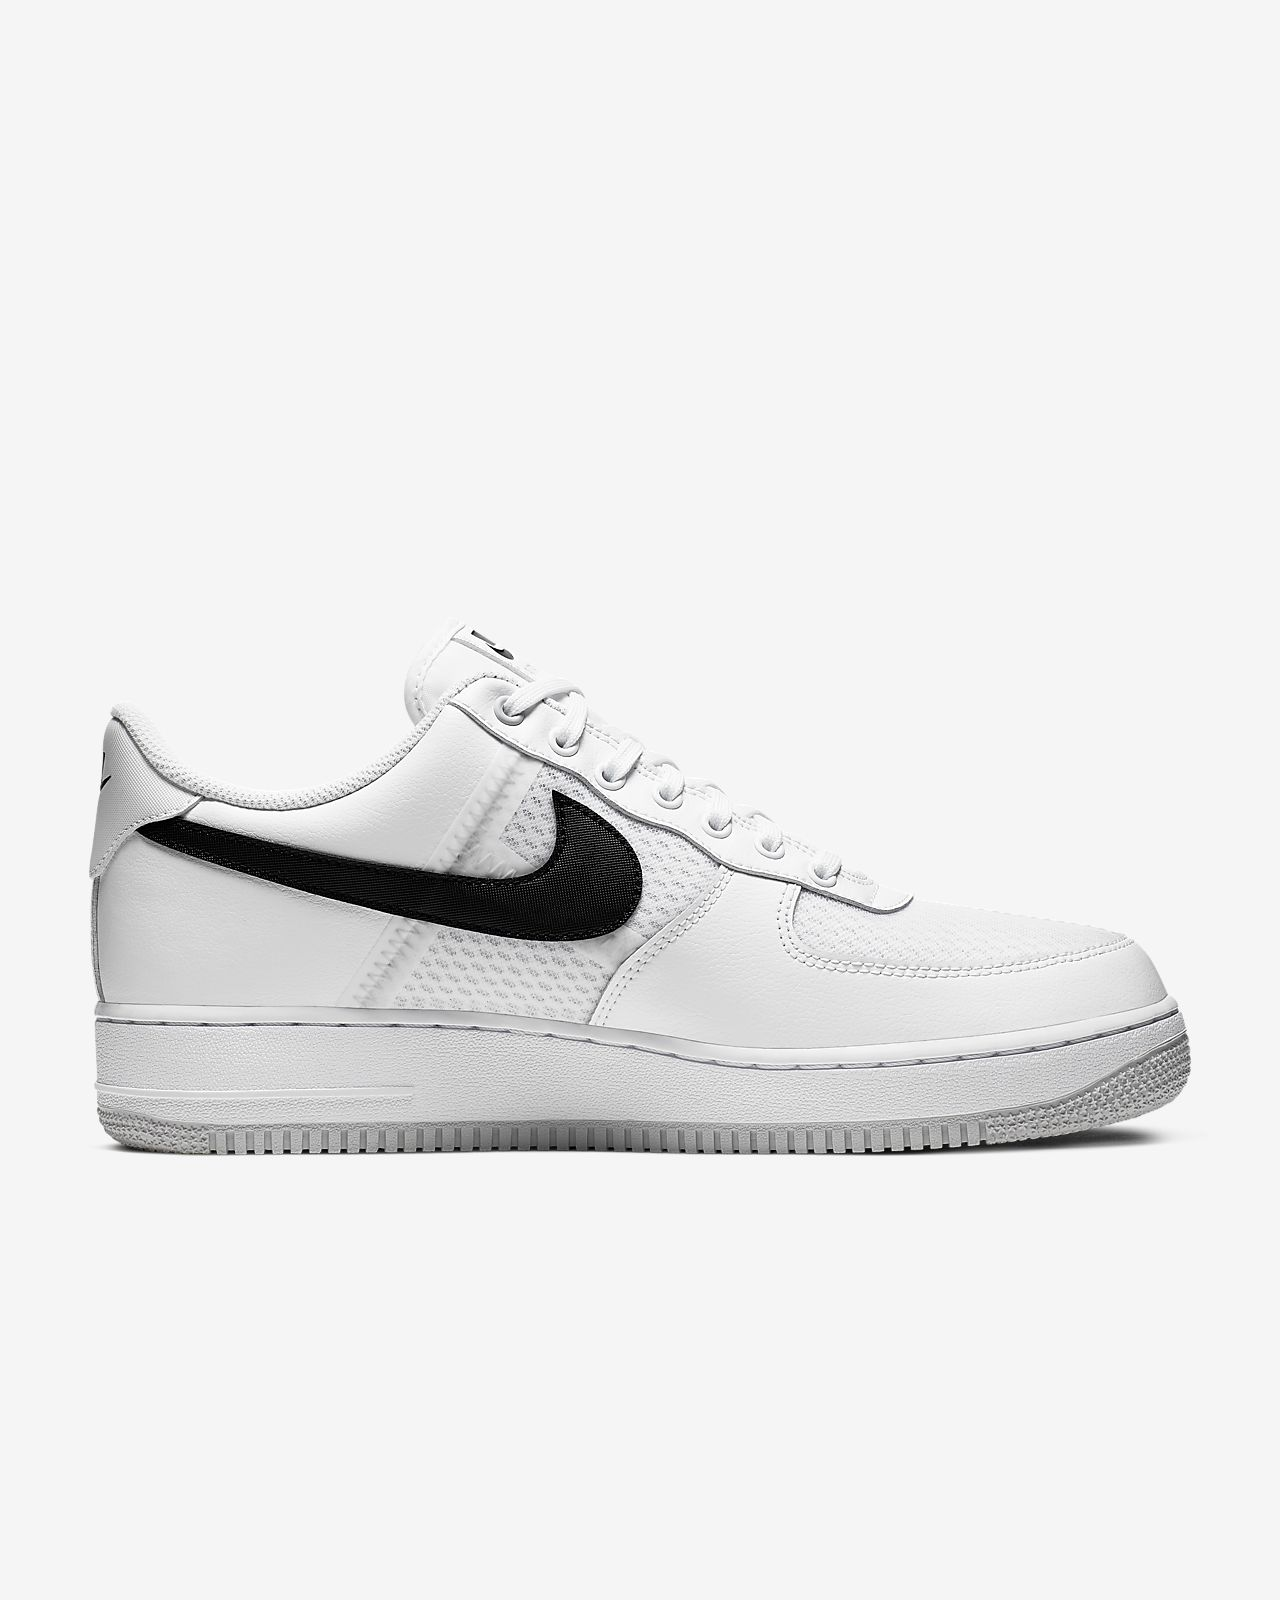 Mens Womens Nike Air Force 1 Low White Black 820266 101 Running Shoes 820266 101